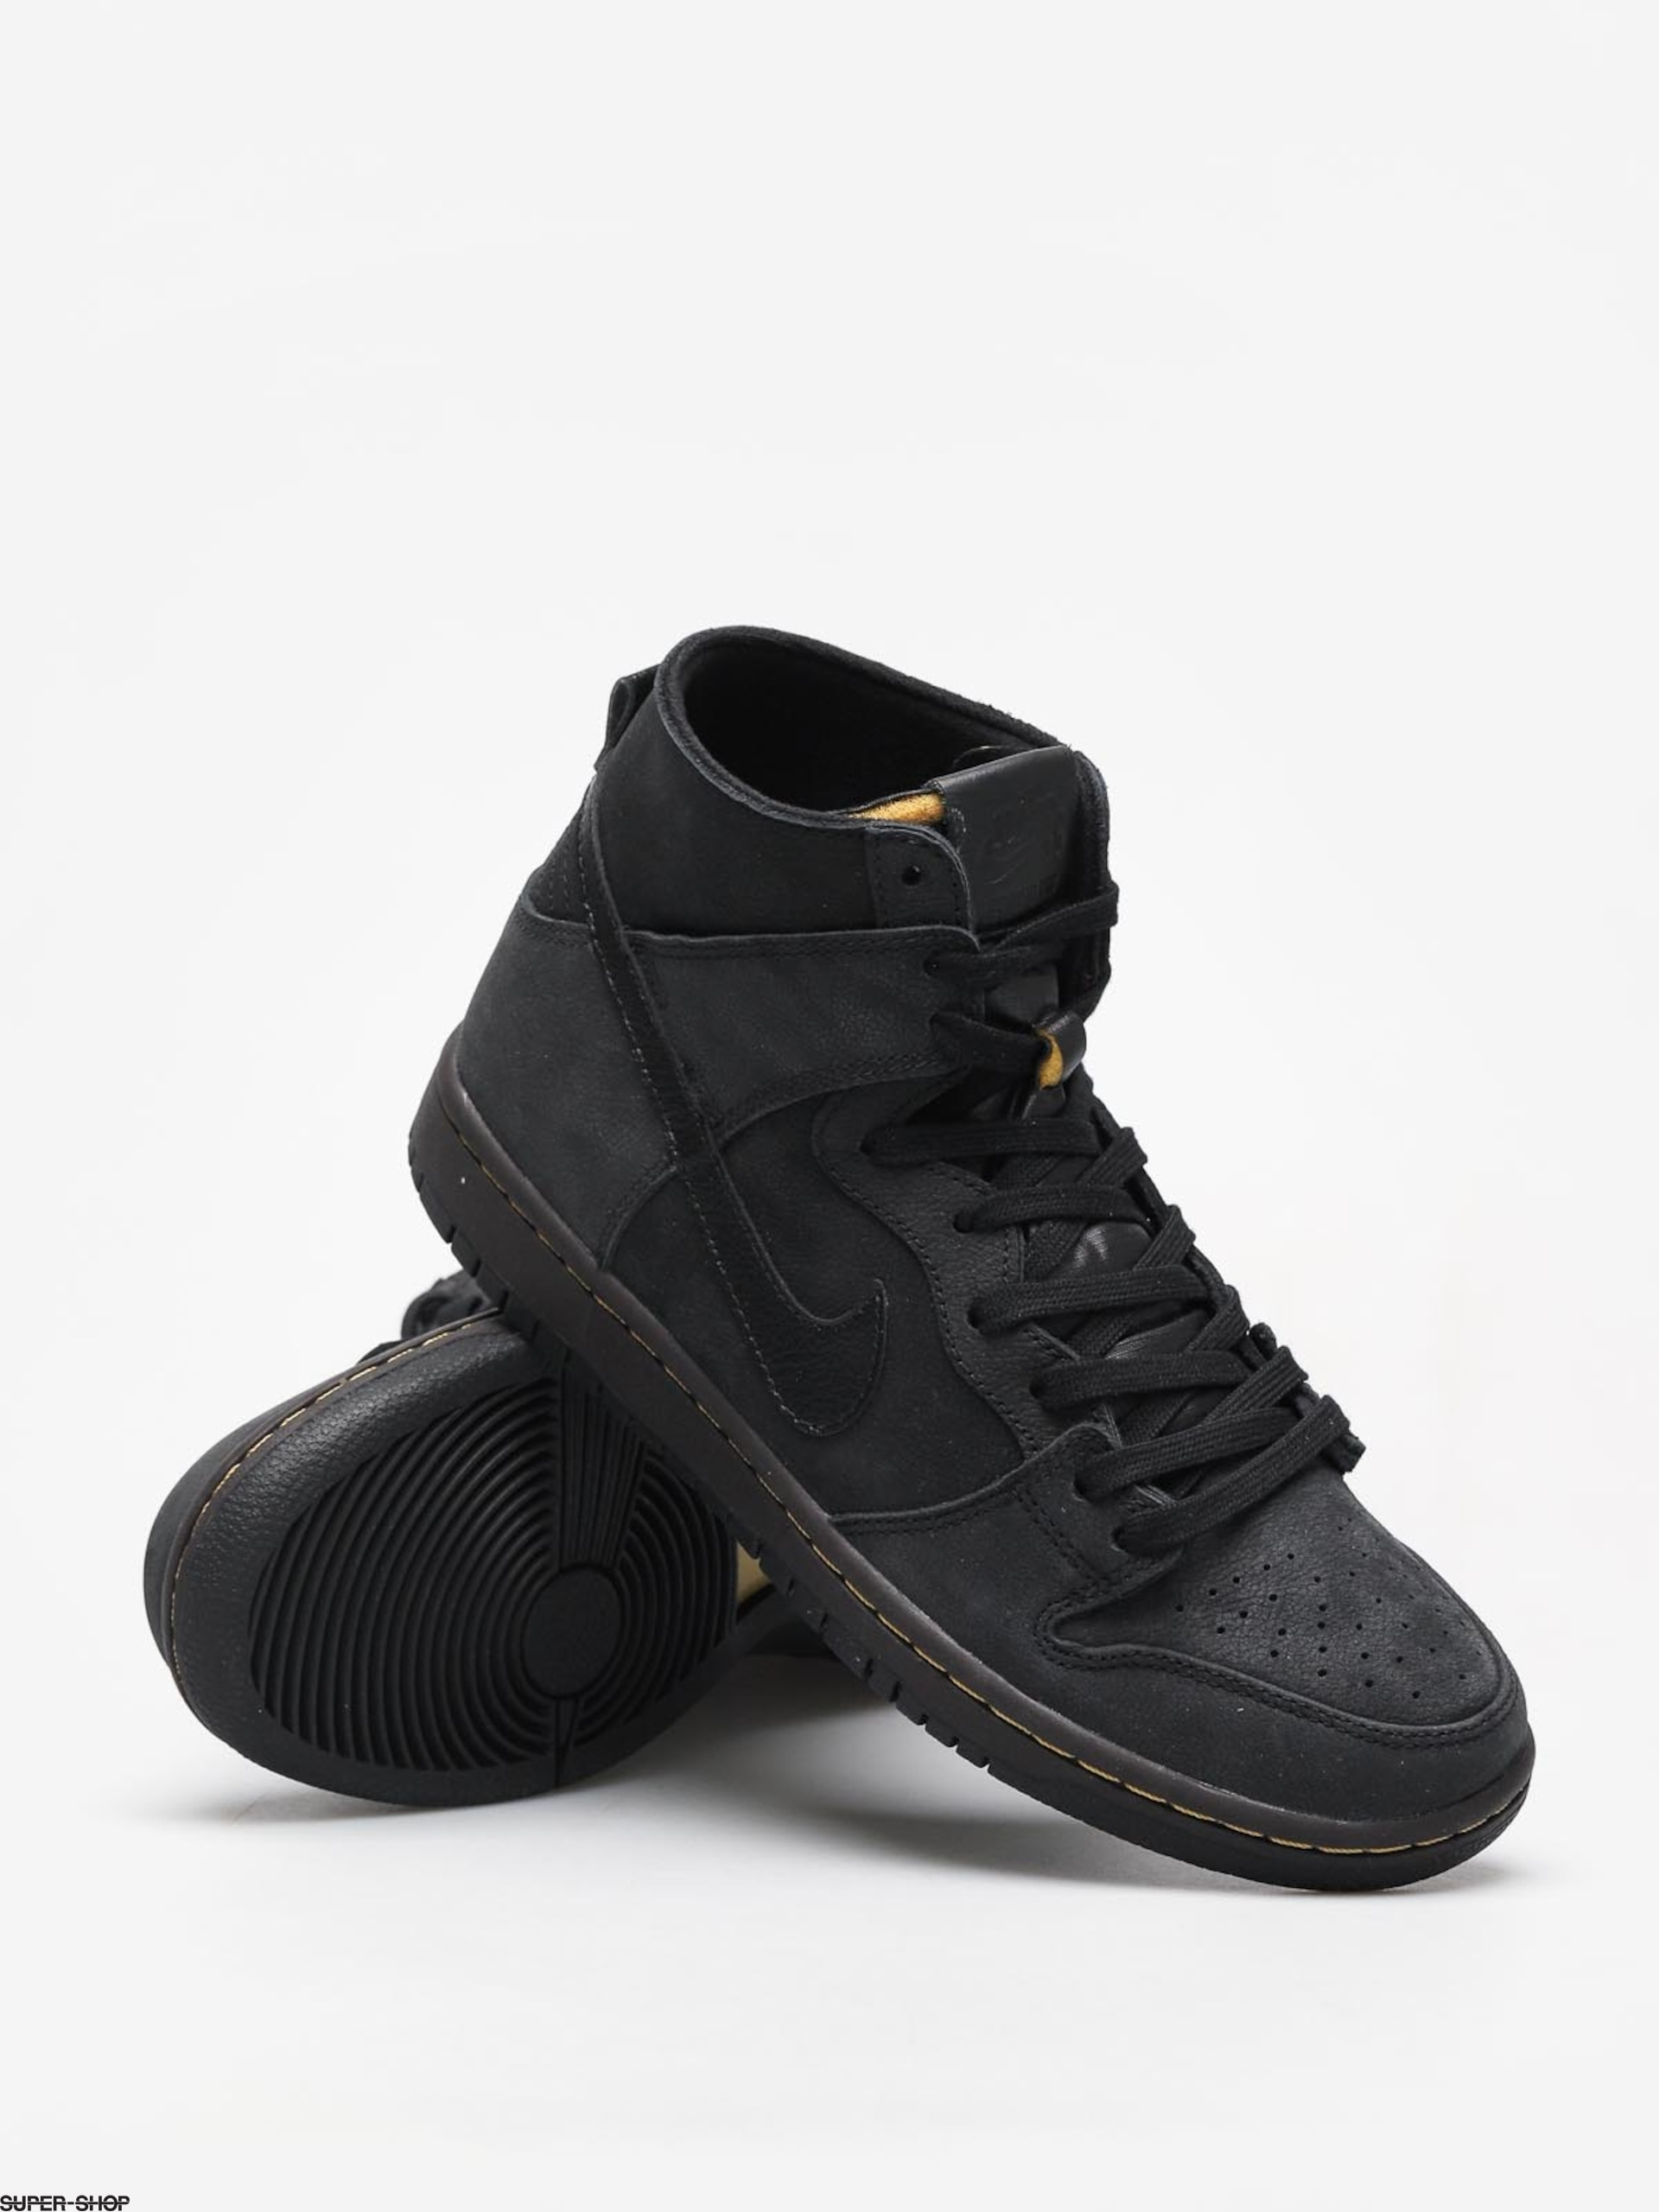 new concept 3871b 5a146 Nike SB Sb Zoom Dunk High Pro Deconstructed Premium Shoes (black/black  velvet brown peat moss)